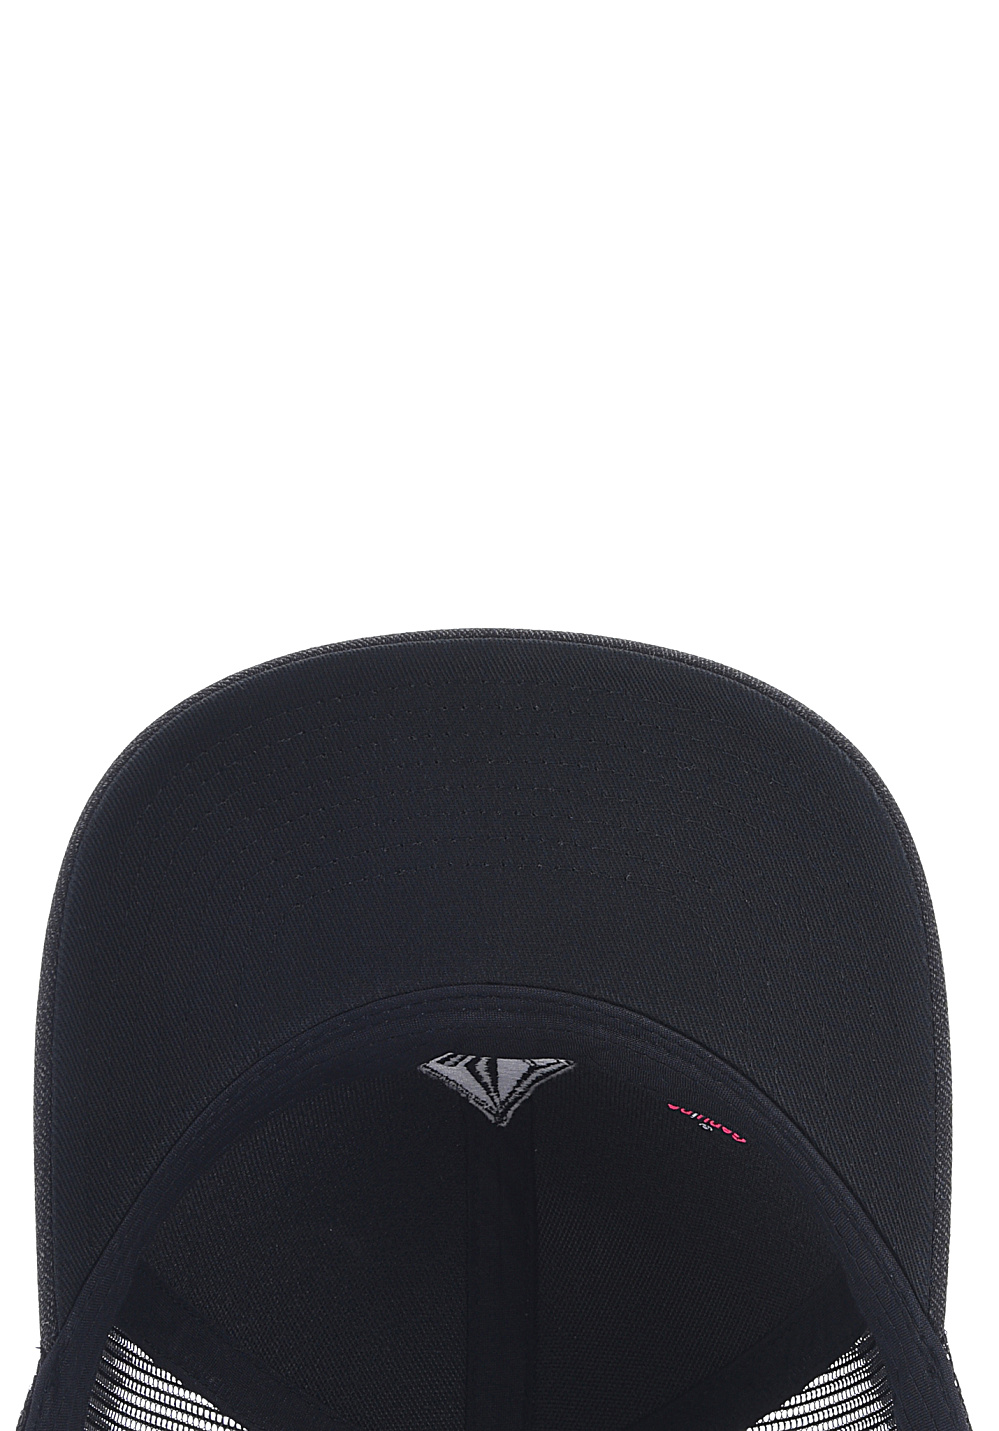 Next. Volcom. Full Stone Cheese - Trucker Cap. €27.95. incl. VAT plus  shipping costs. Grey Black Grey cd1ec6f0e6b3